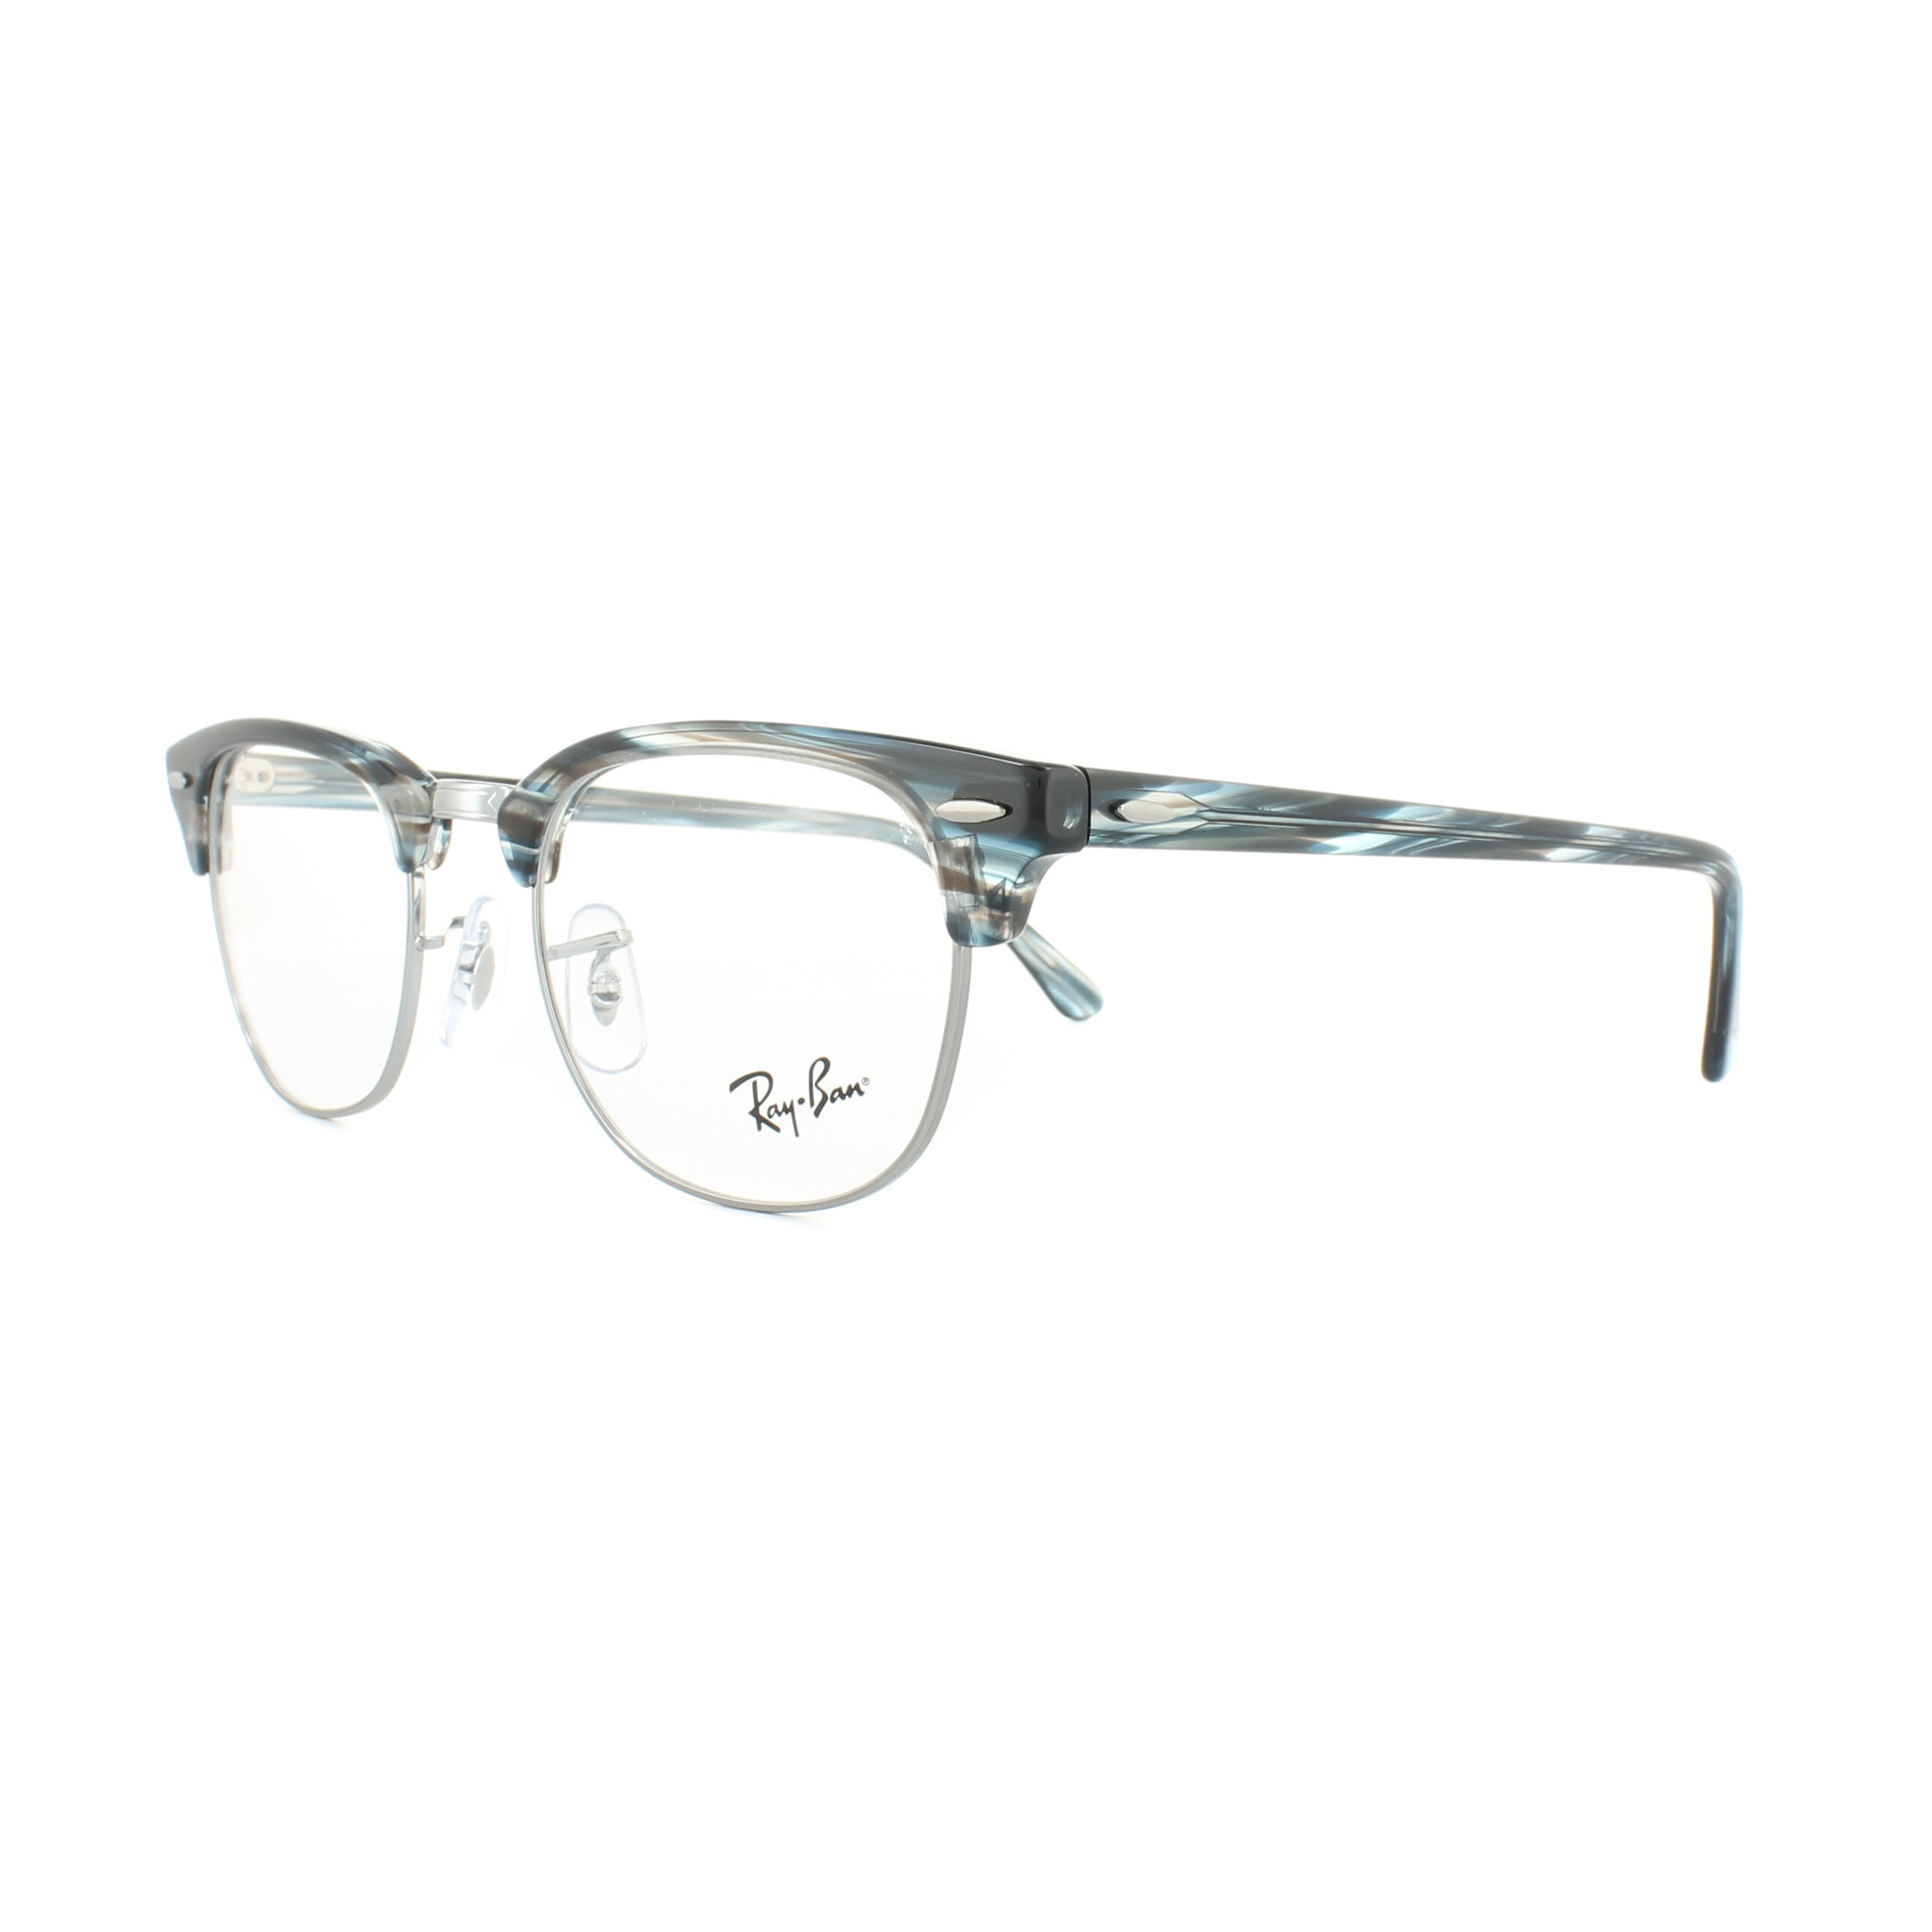 62ace15491 Sentinel Ray-Ban Glasses Frames 5154 Clubmaster 5750 Blue Grey Striped 51mm  Mens Womens